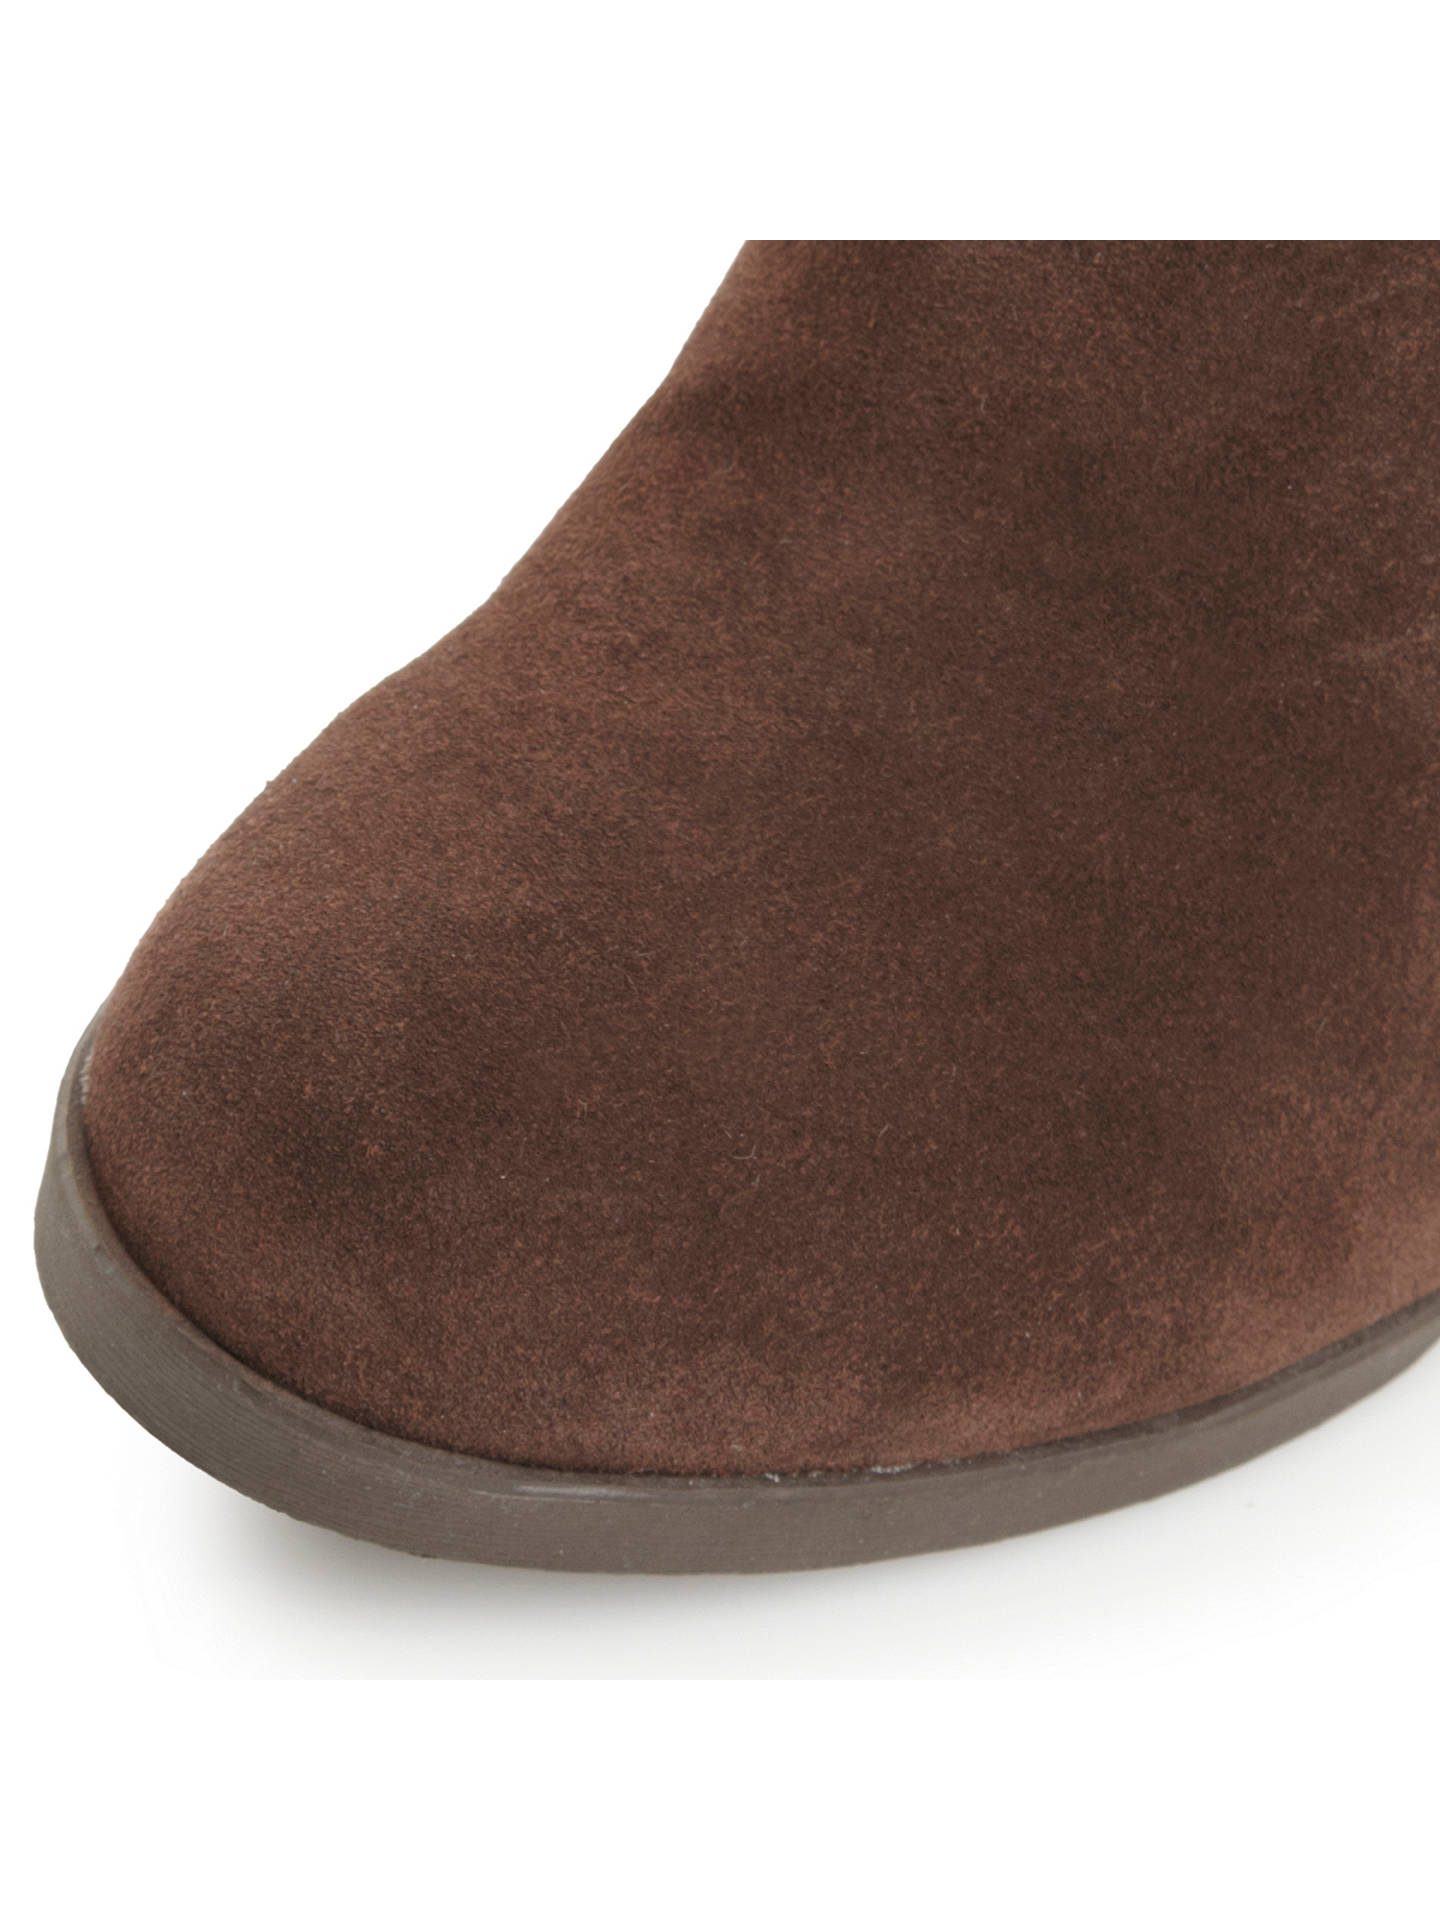 463cc6b1955 Steve Madden Octagon Over The Knee Boots at John Lewis   Partners